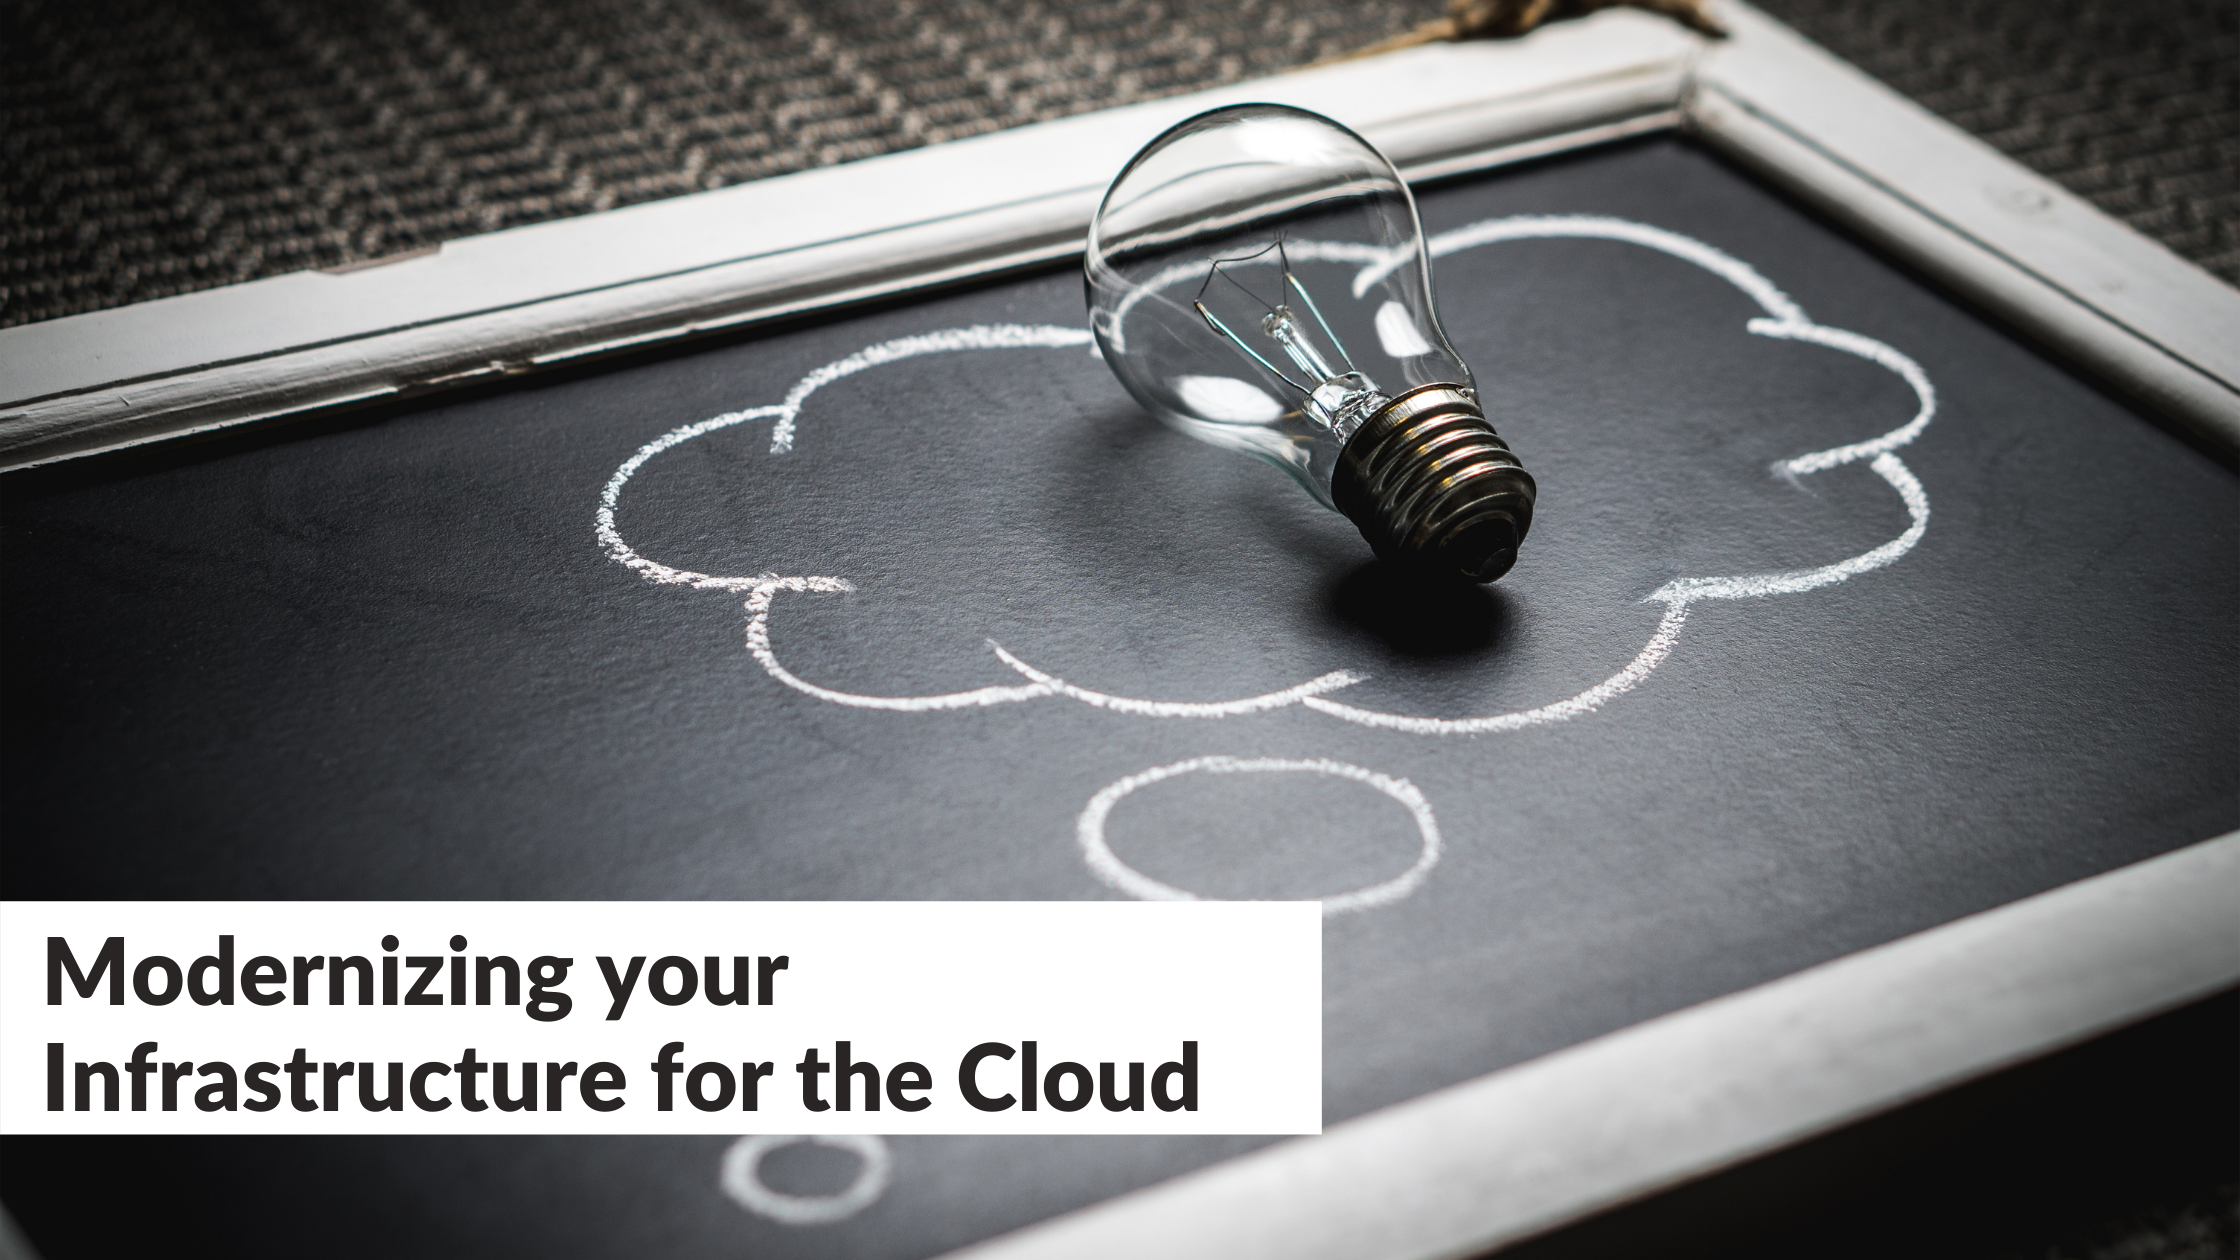 Modernizing your Infrastructure for the Cloud